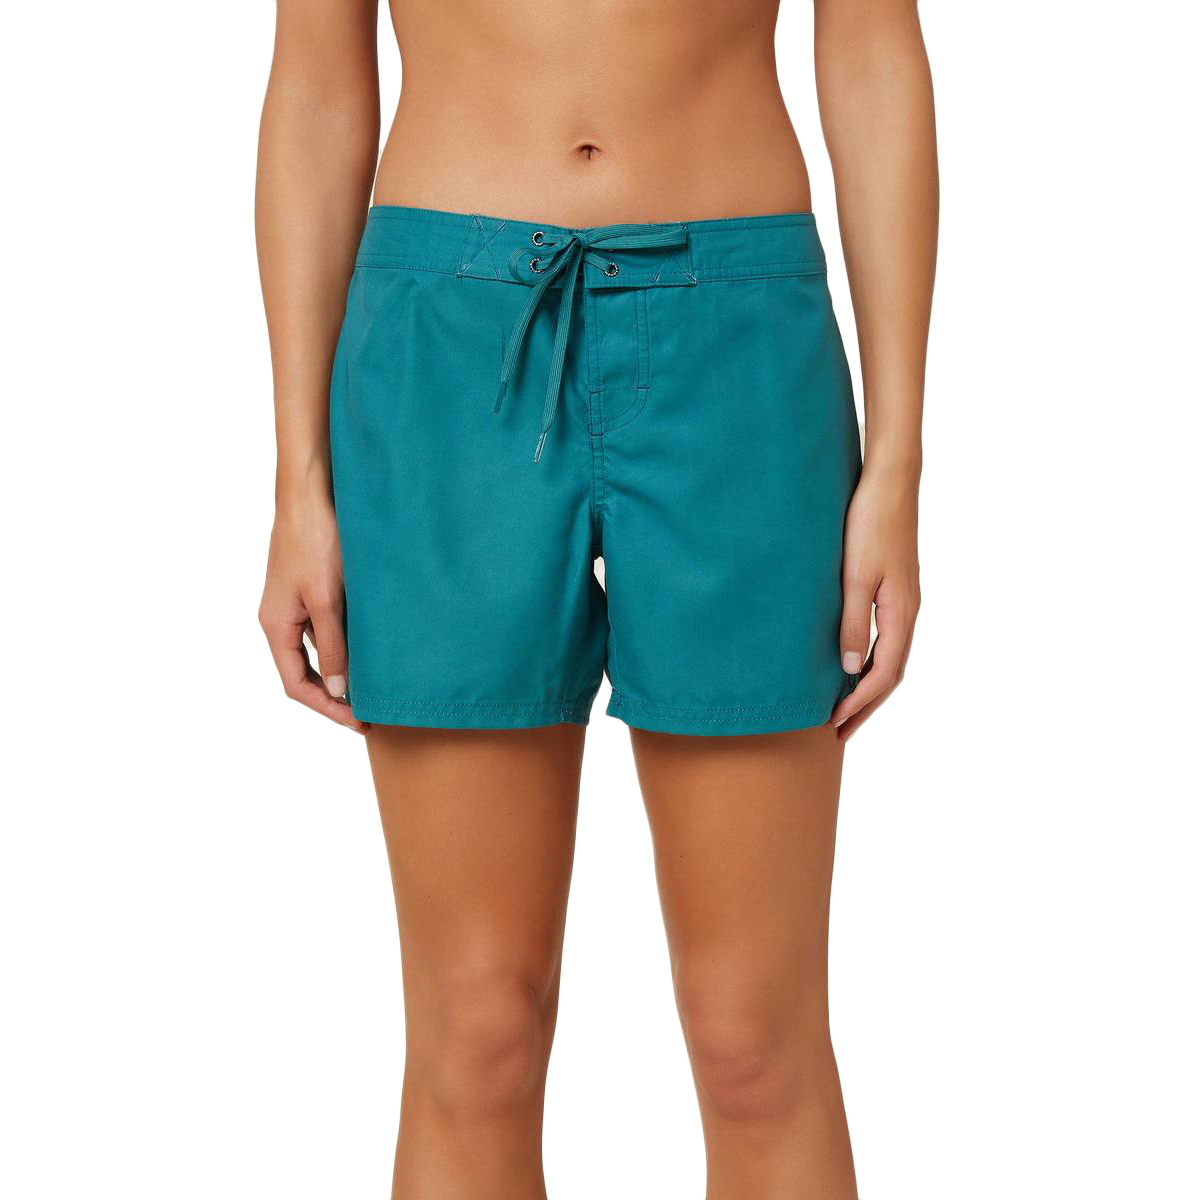 "O'neill Women's Saltwater Solids 5"" Boardshort - Green, 11"